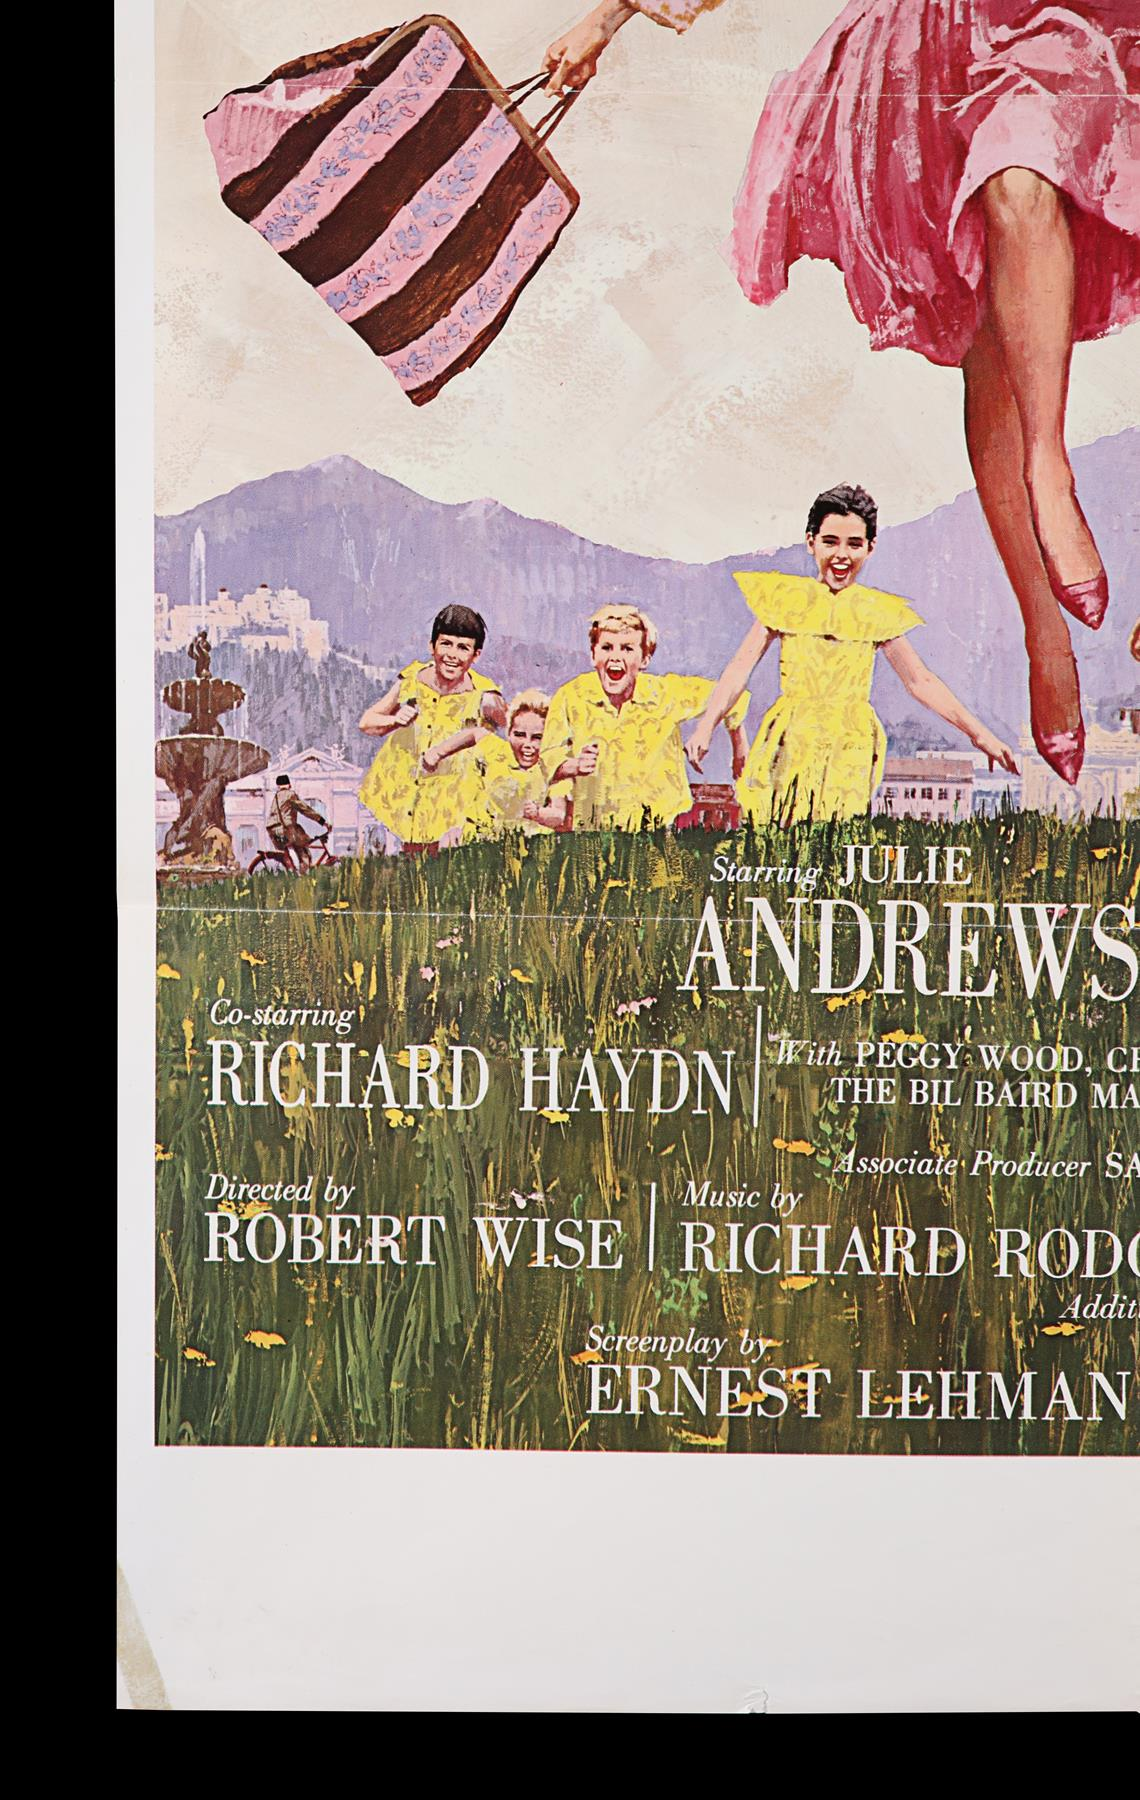 THE SOUND OF MUSIC (1965) - US One-Sheet, 1965 - Image 5 of 7